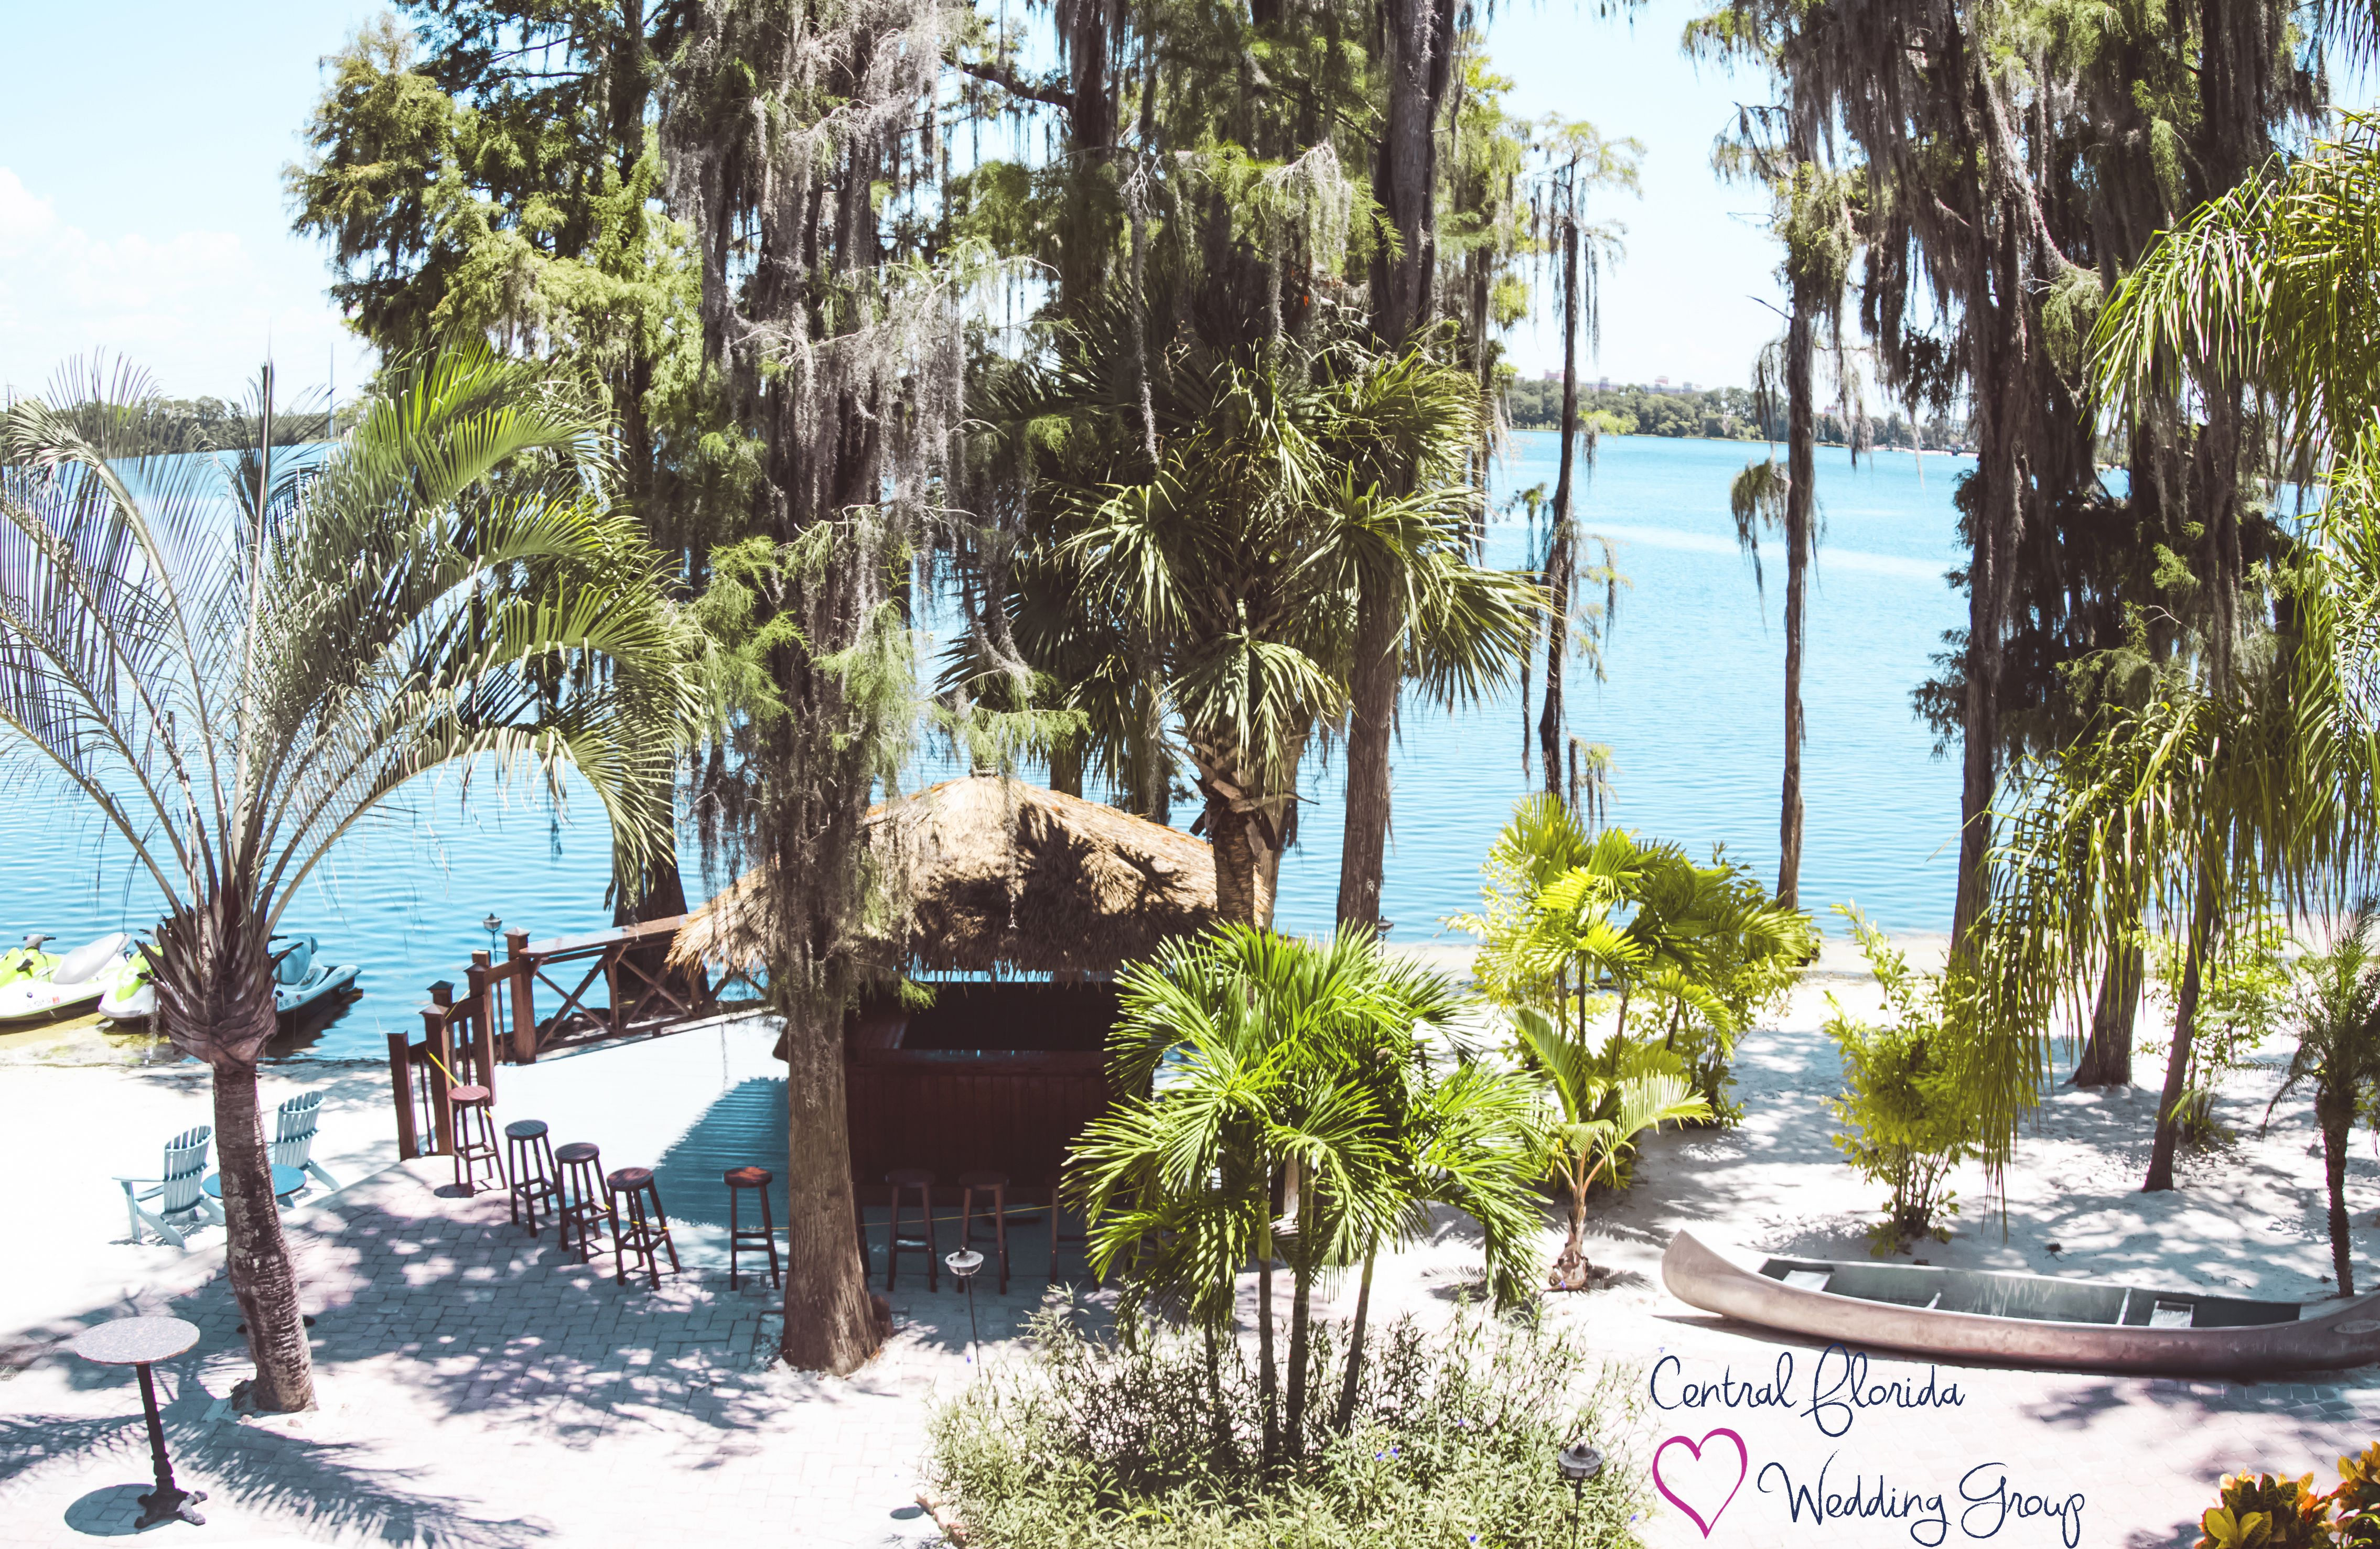 Central florida wedding groups view of paradise cove